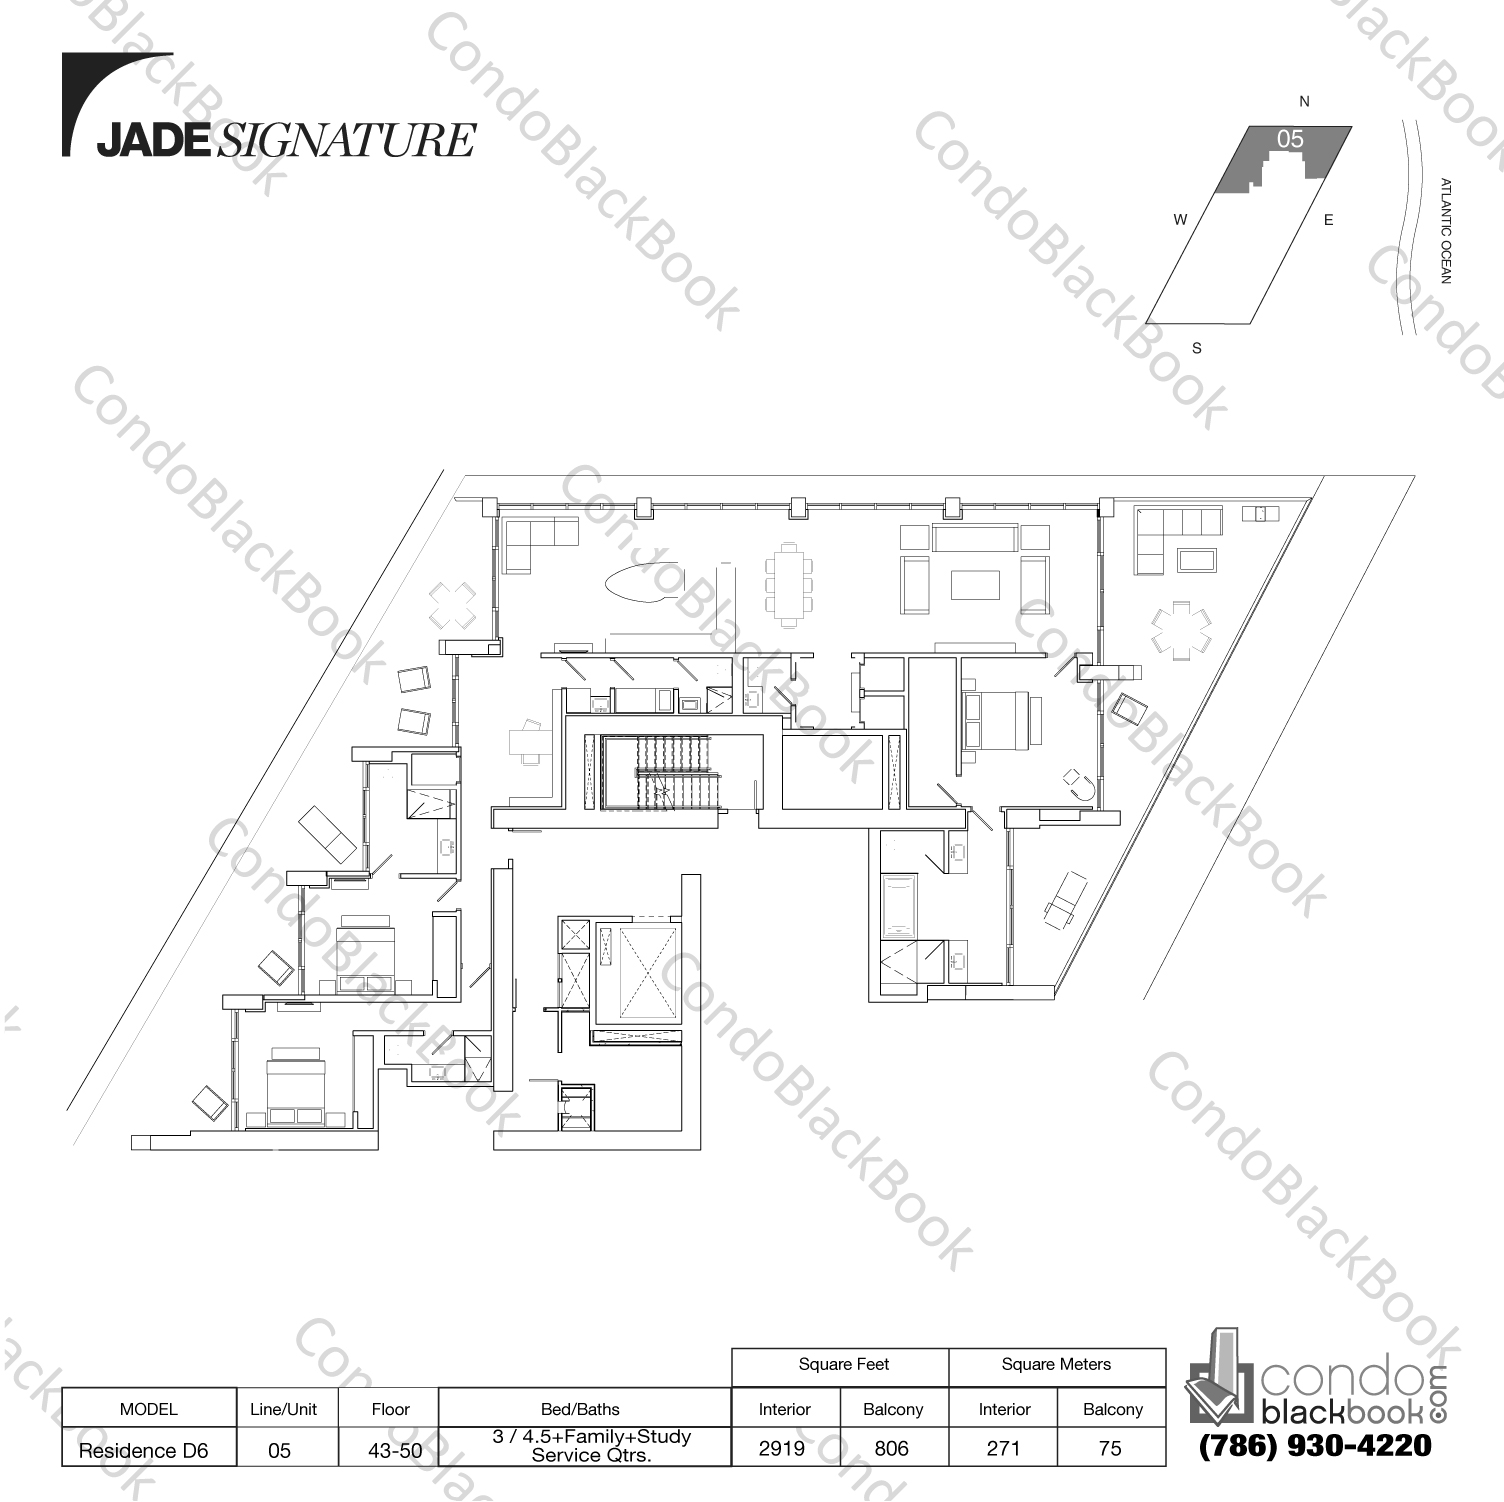 Floor plan for Jade Signature Sunny Isles Beach, model Residence D6, line 05, 3 / 4.5+Study+Service Quarters bedrooms, 2919 sq ft